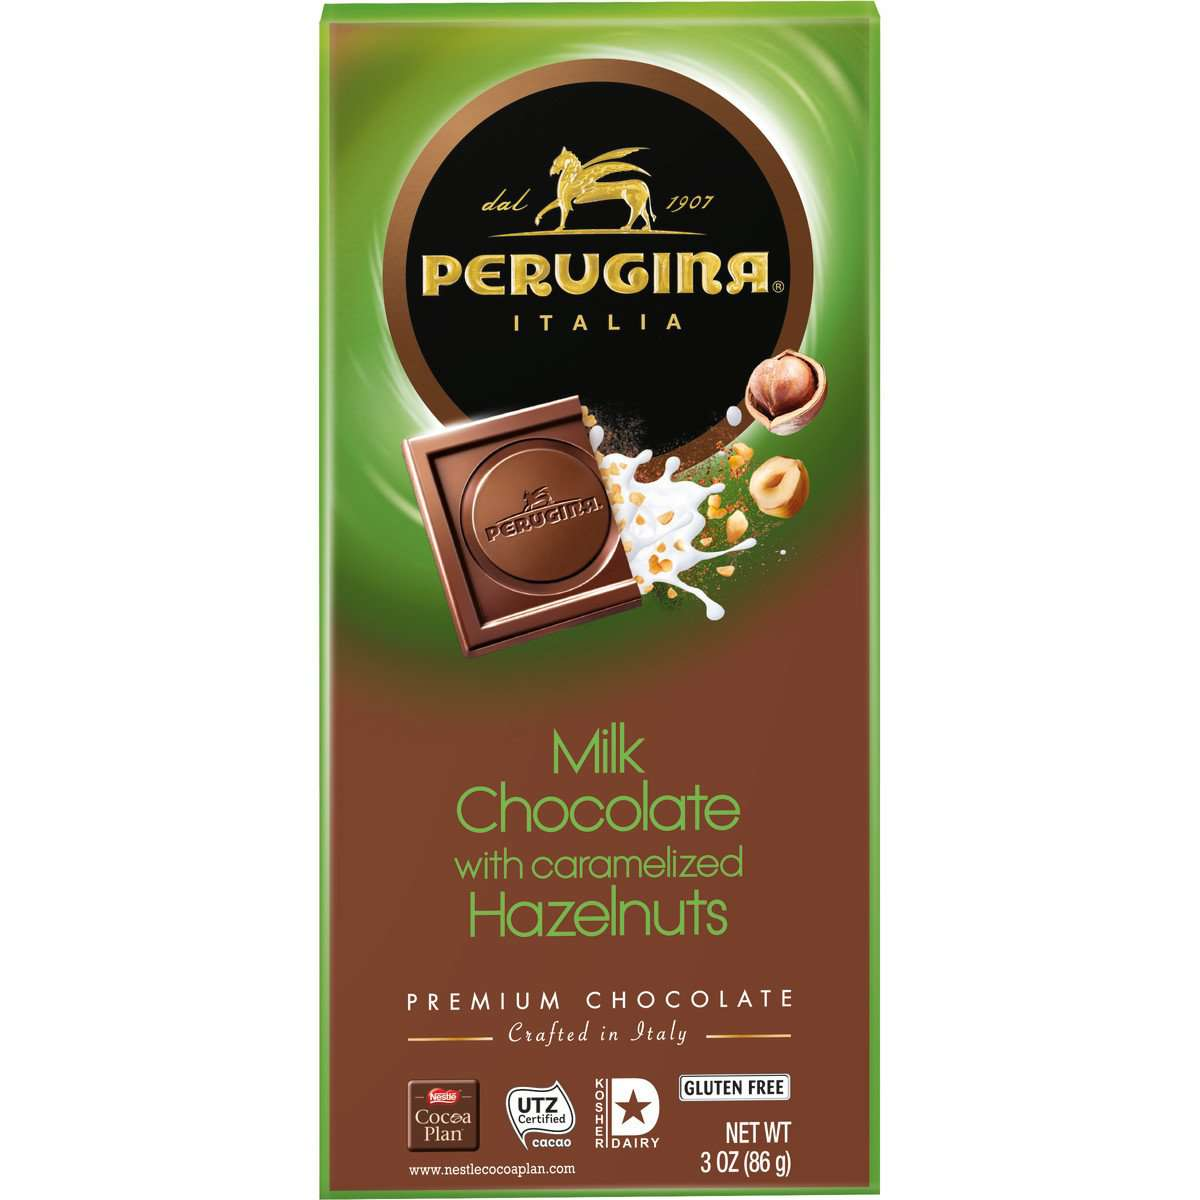 Perugina Milk Chocolate & Hazelnuts Bar, 86 g